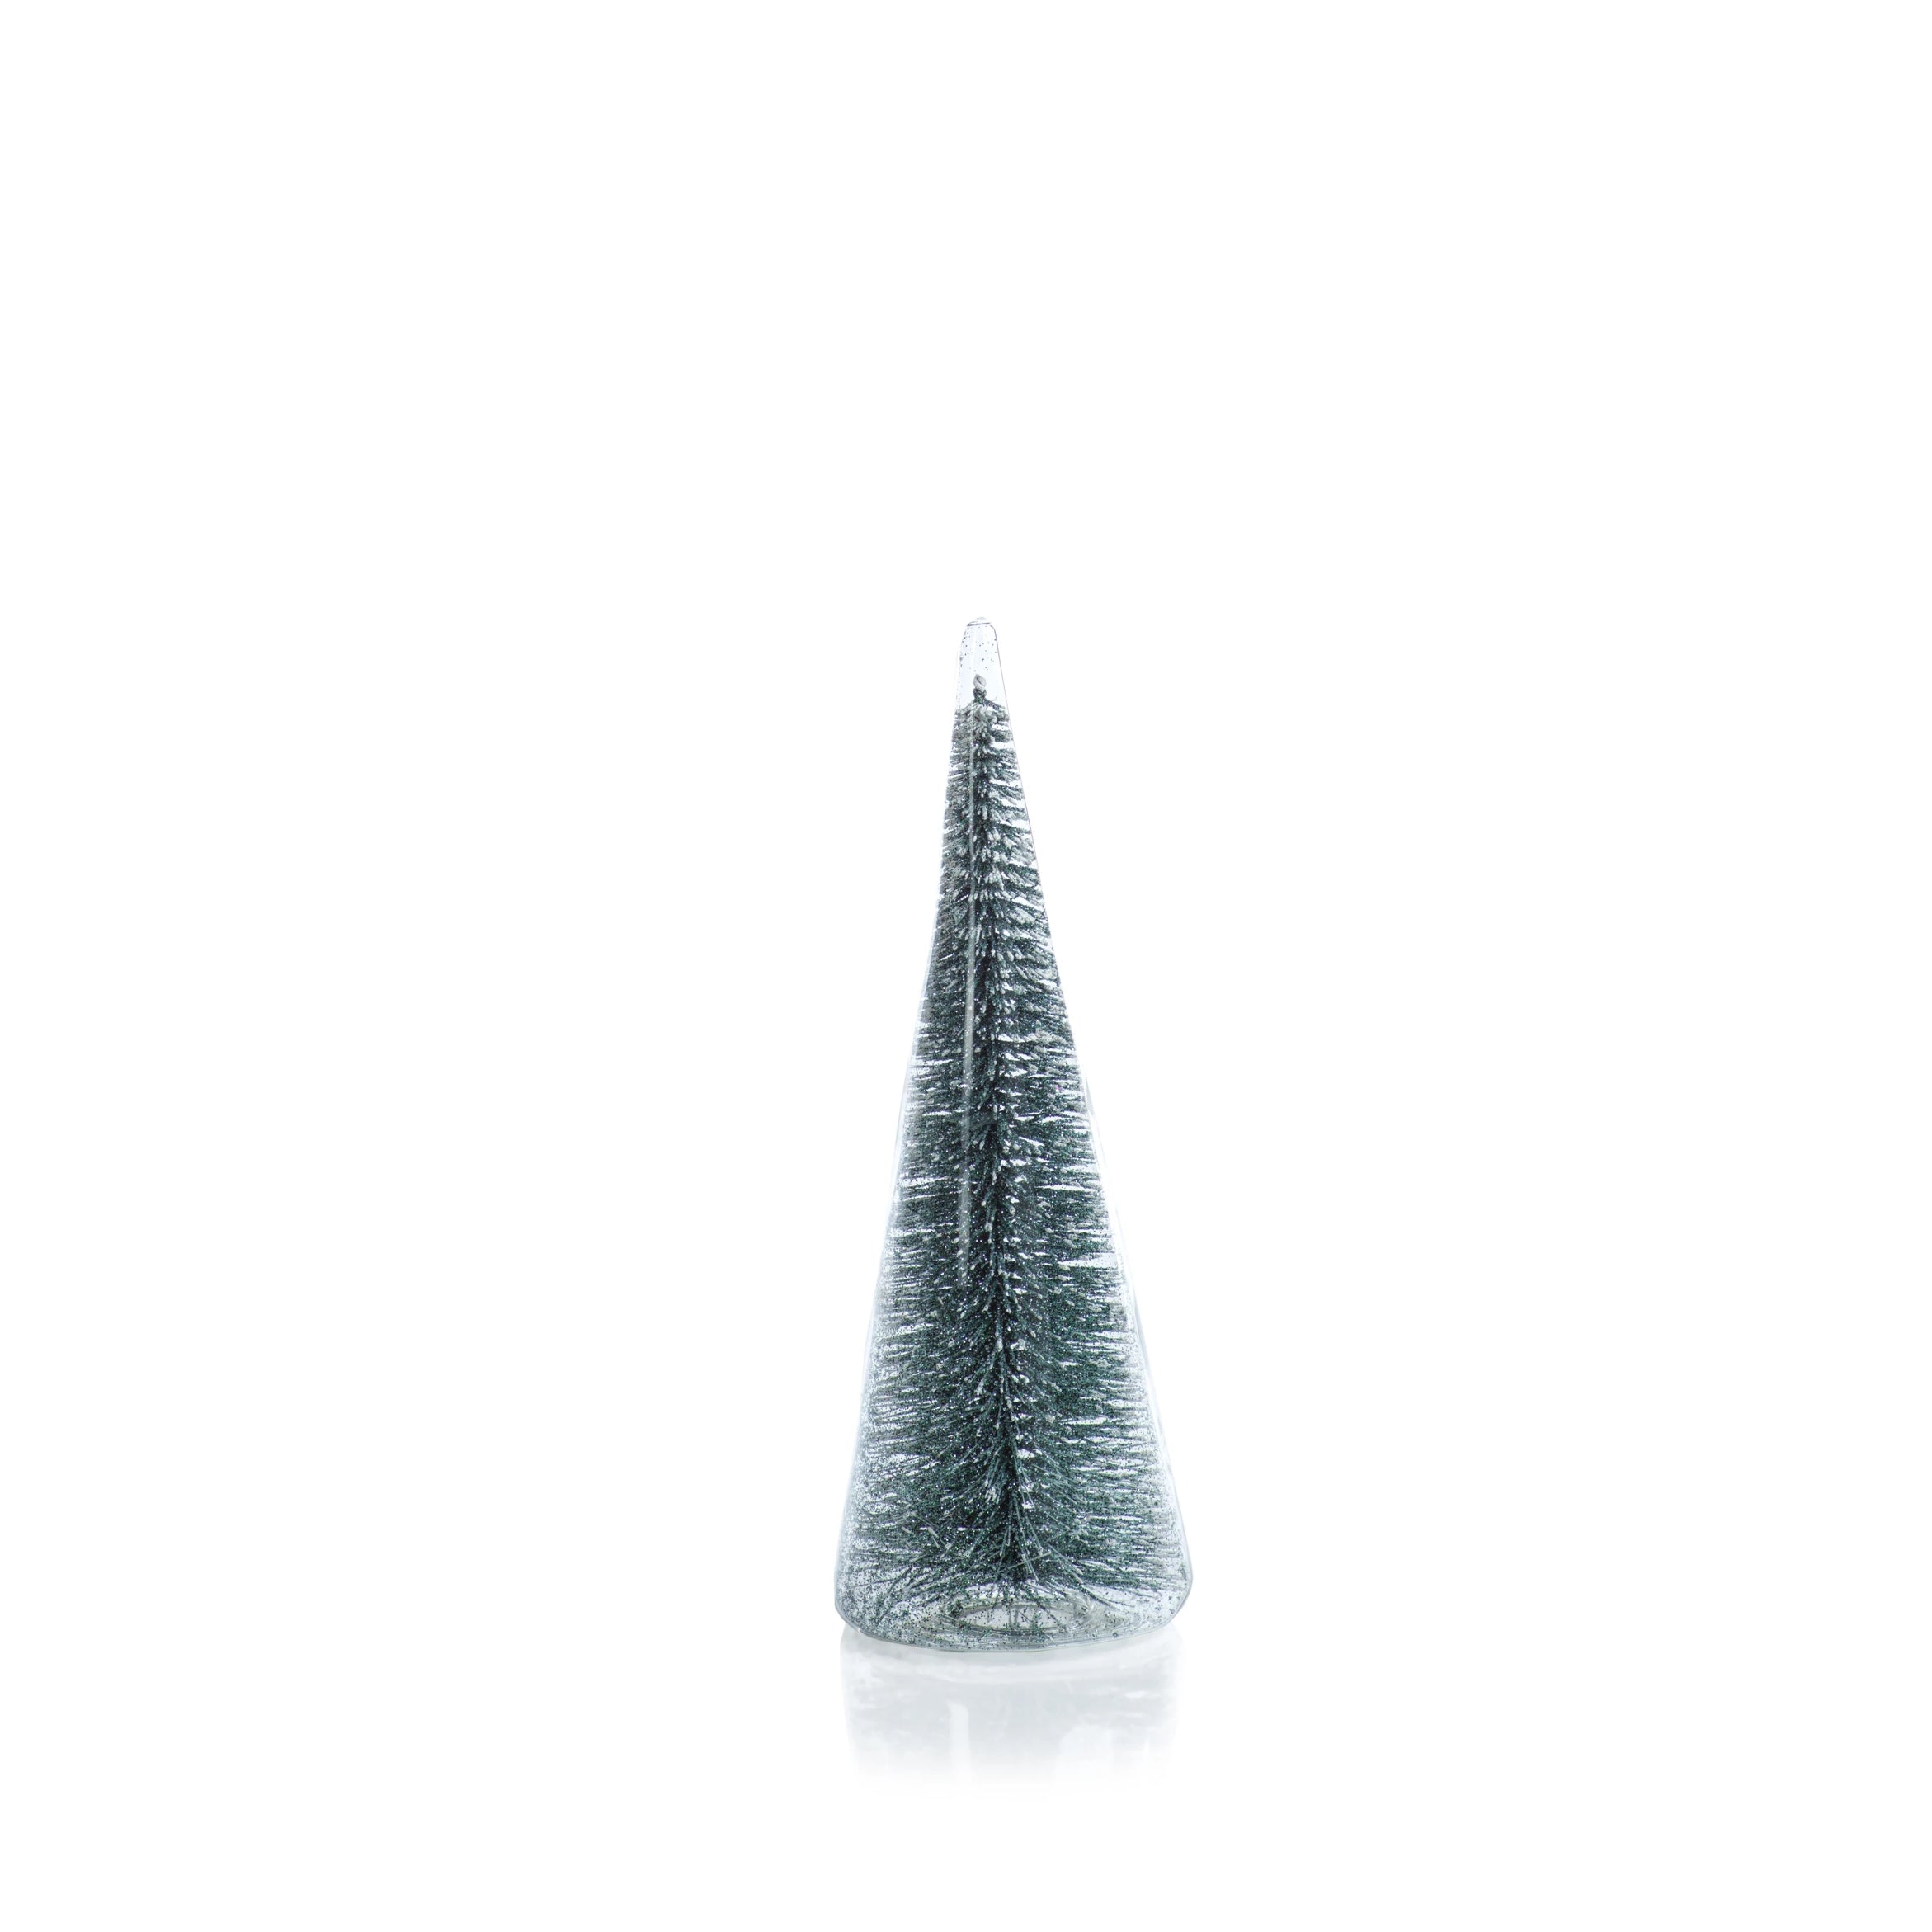 Clear Glass Decorative Tree w/Teal Glitter - CARLYLE AVENUE